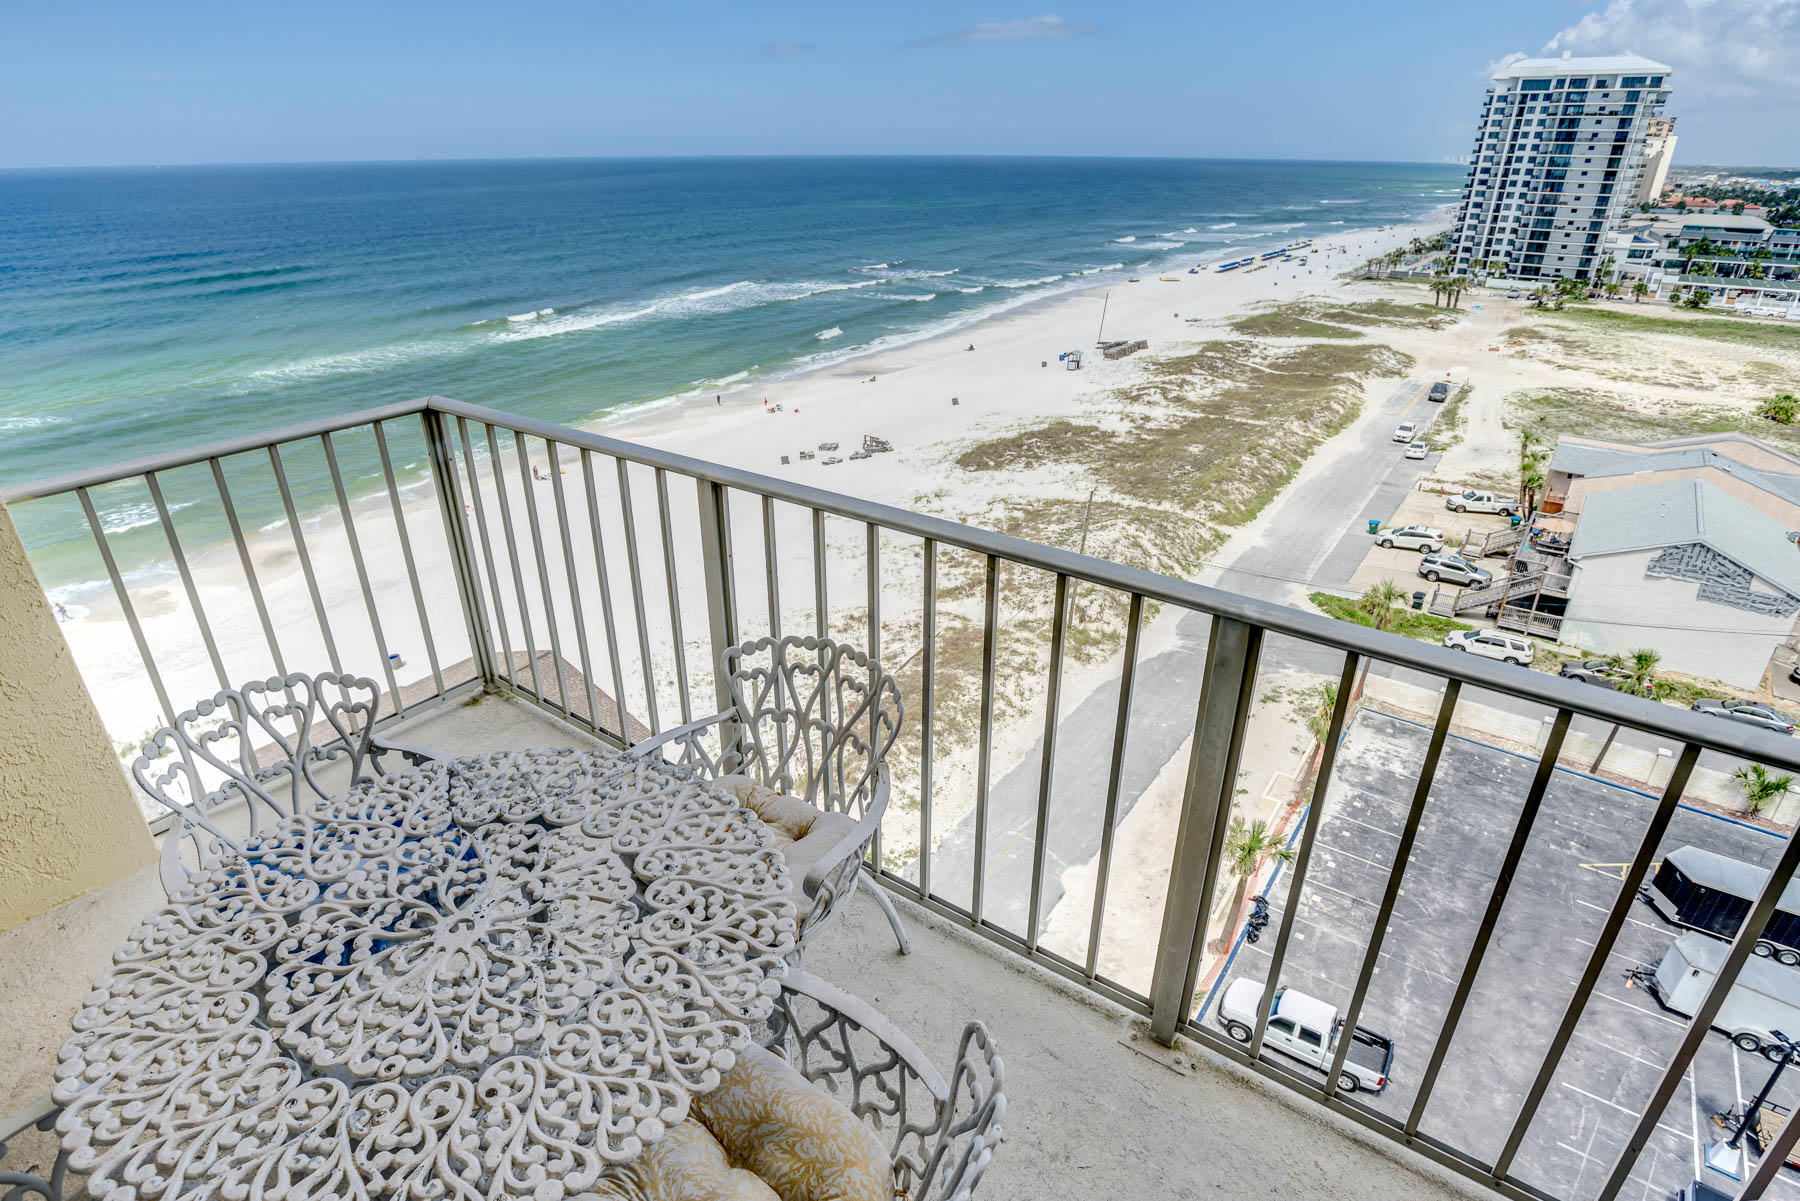 Incredible view of the Gulf!  Large sliding glass doors out to the patio.  Very well kept unit with a nice open concept and 2 over sized bathrooms. There is an ultra thermal massage tub with an air cleaning system, so no water stays in the lines.  The kitchen has an induction glass top stove and a microwave with convection, broil and bake options.  Gated complex with many amenities including 2 pools, a tennis court, exercise room and much more.